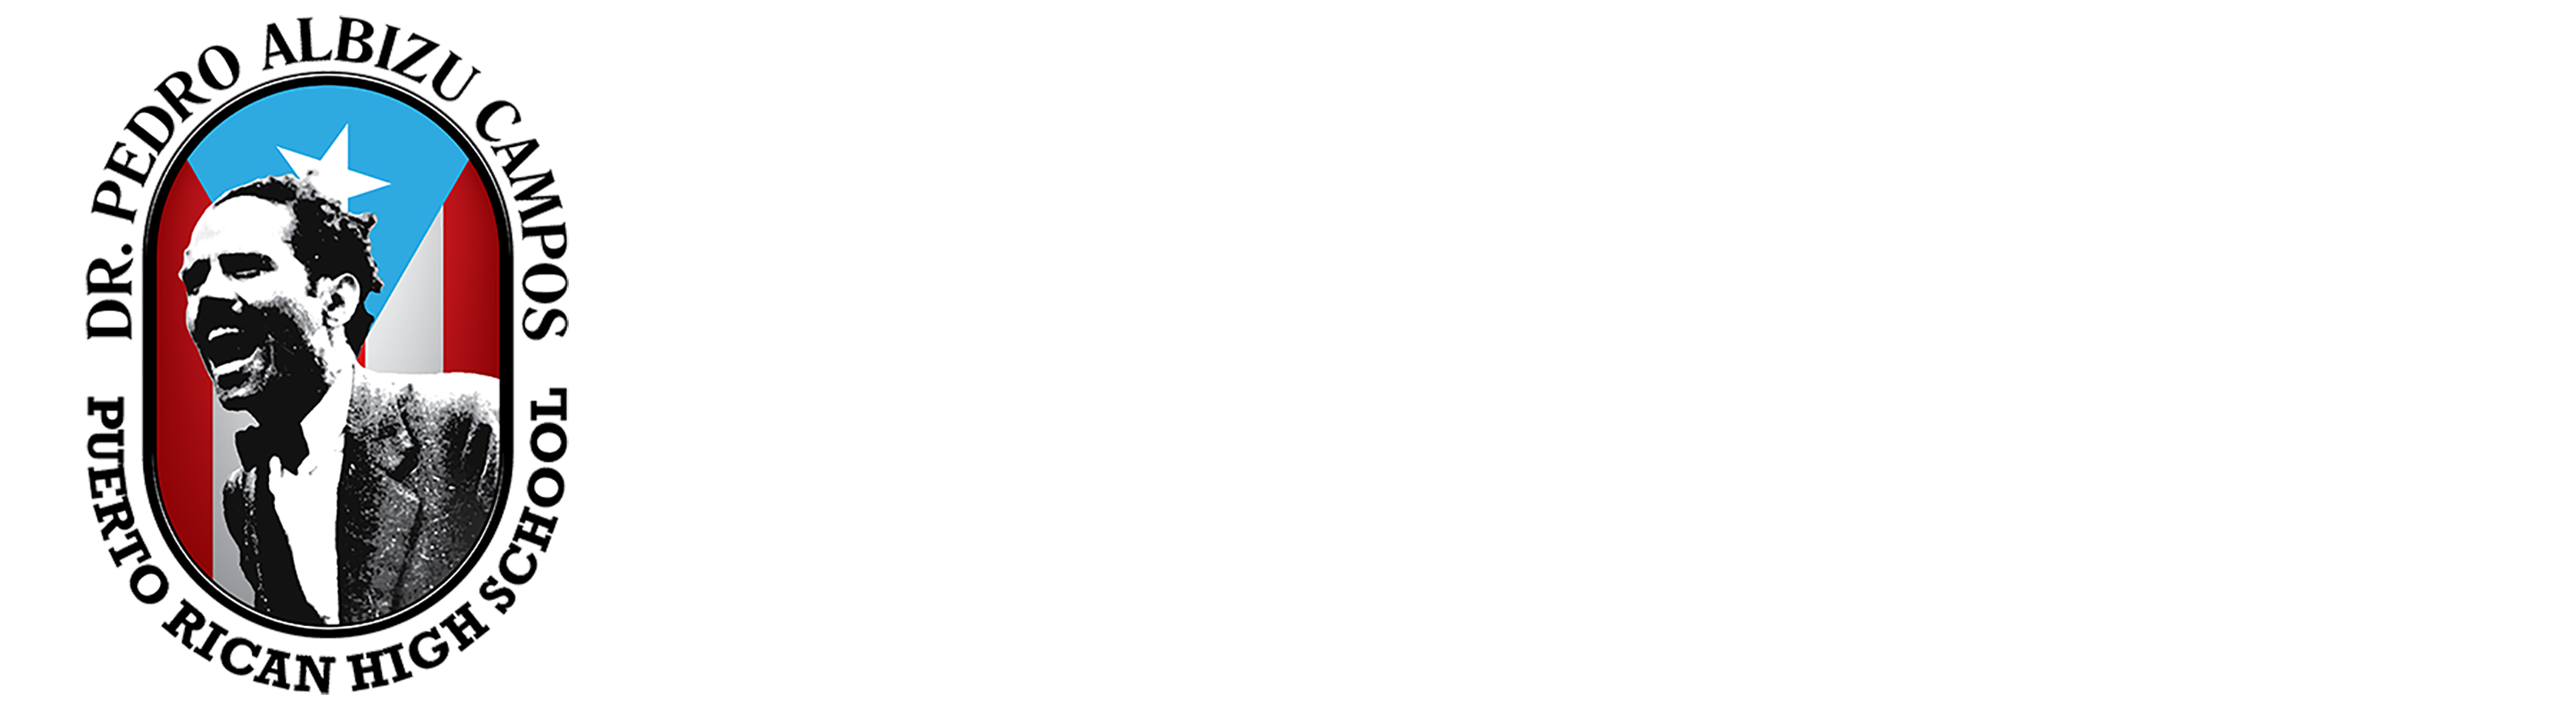 Dr. Pedro Albizu Campos High School